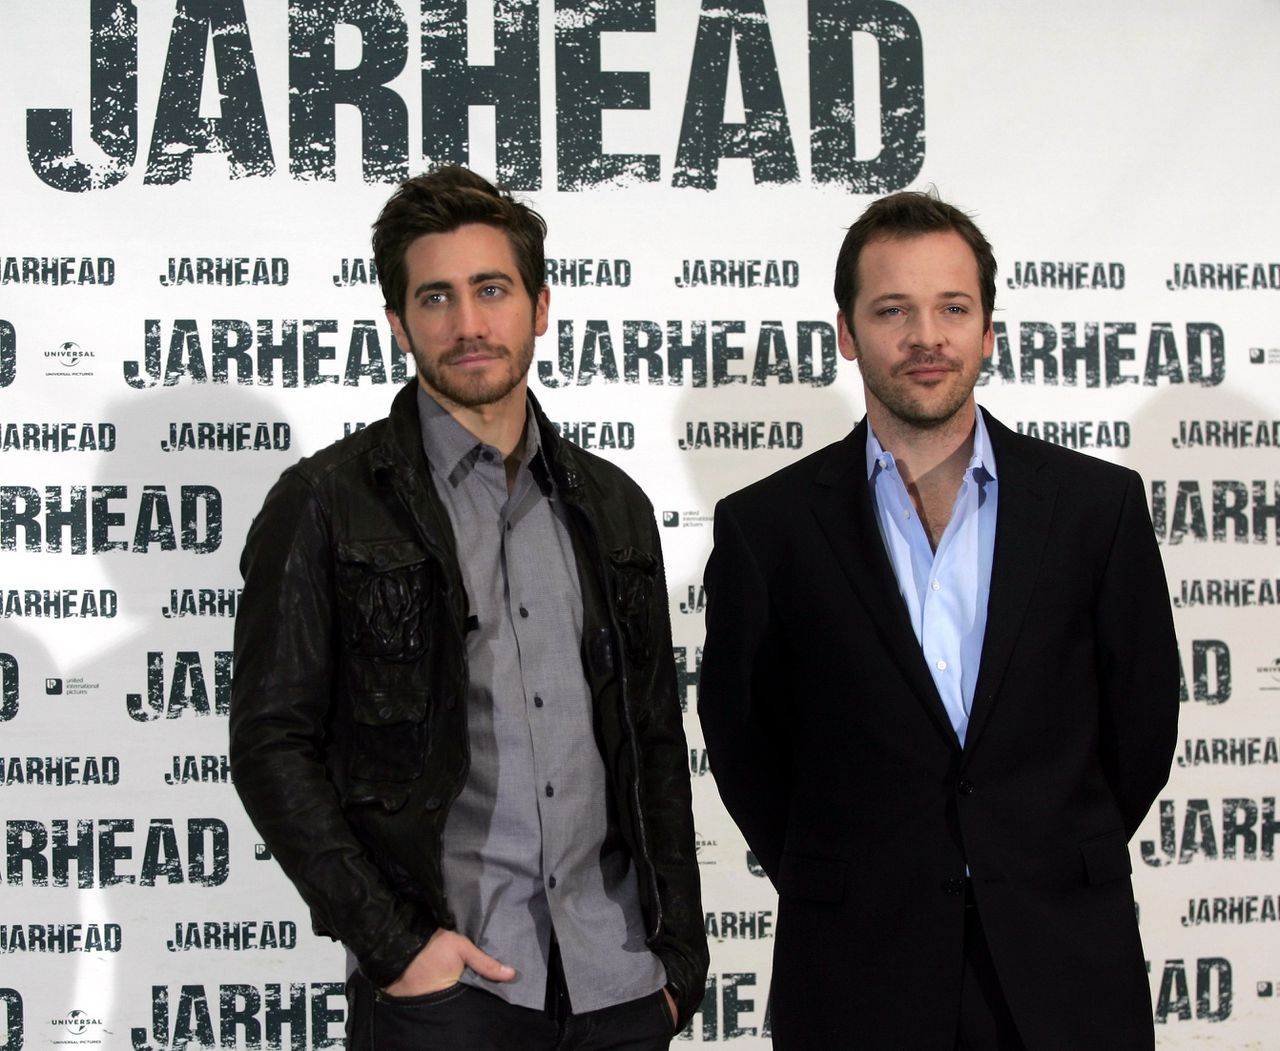 """US actors Jake Gyllenhaal, left, and Peter Sarsgaard, right, pose for the photographers in Berlin Monday, Dec. 12, 2005, during a photocall for their anti-war-film """"Jarhead"""". (AP Photo/Roberto Pfeil)"""